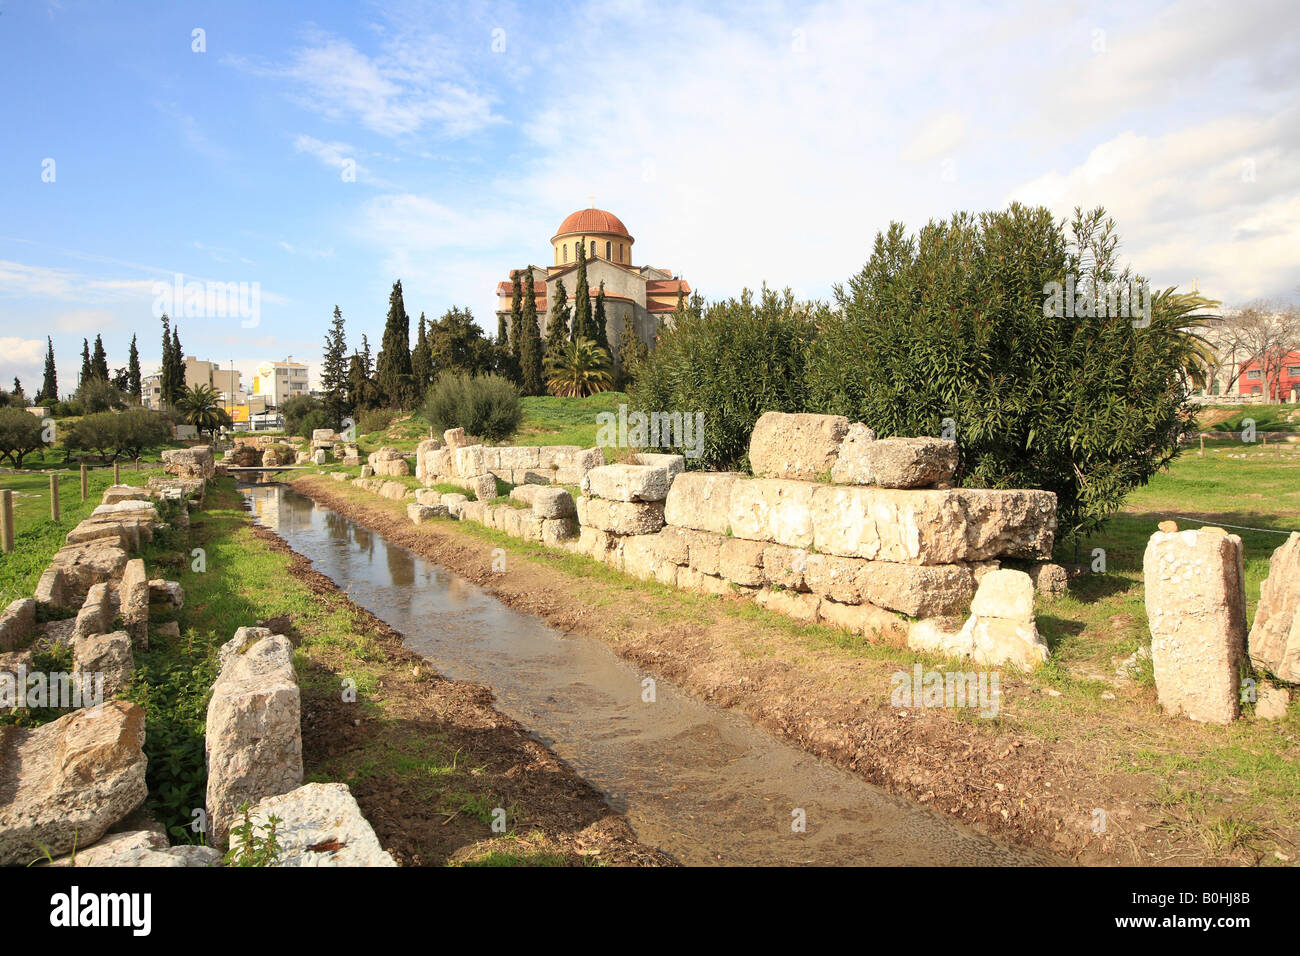 Agia Triada Church at back, Kerameikos Cemetery, Athens, Greece - Stock Image